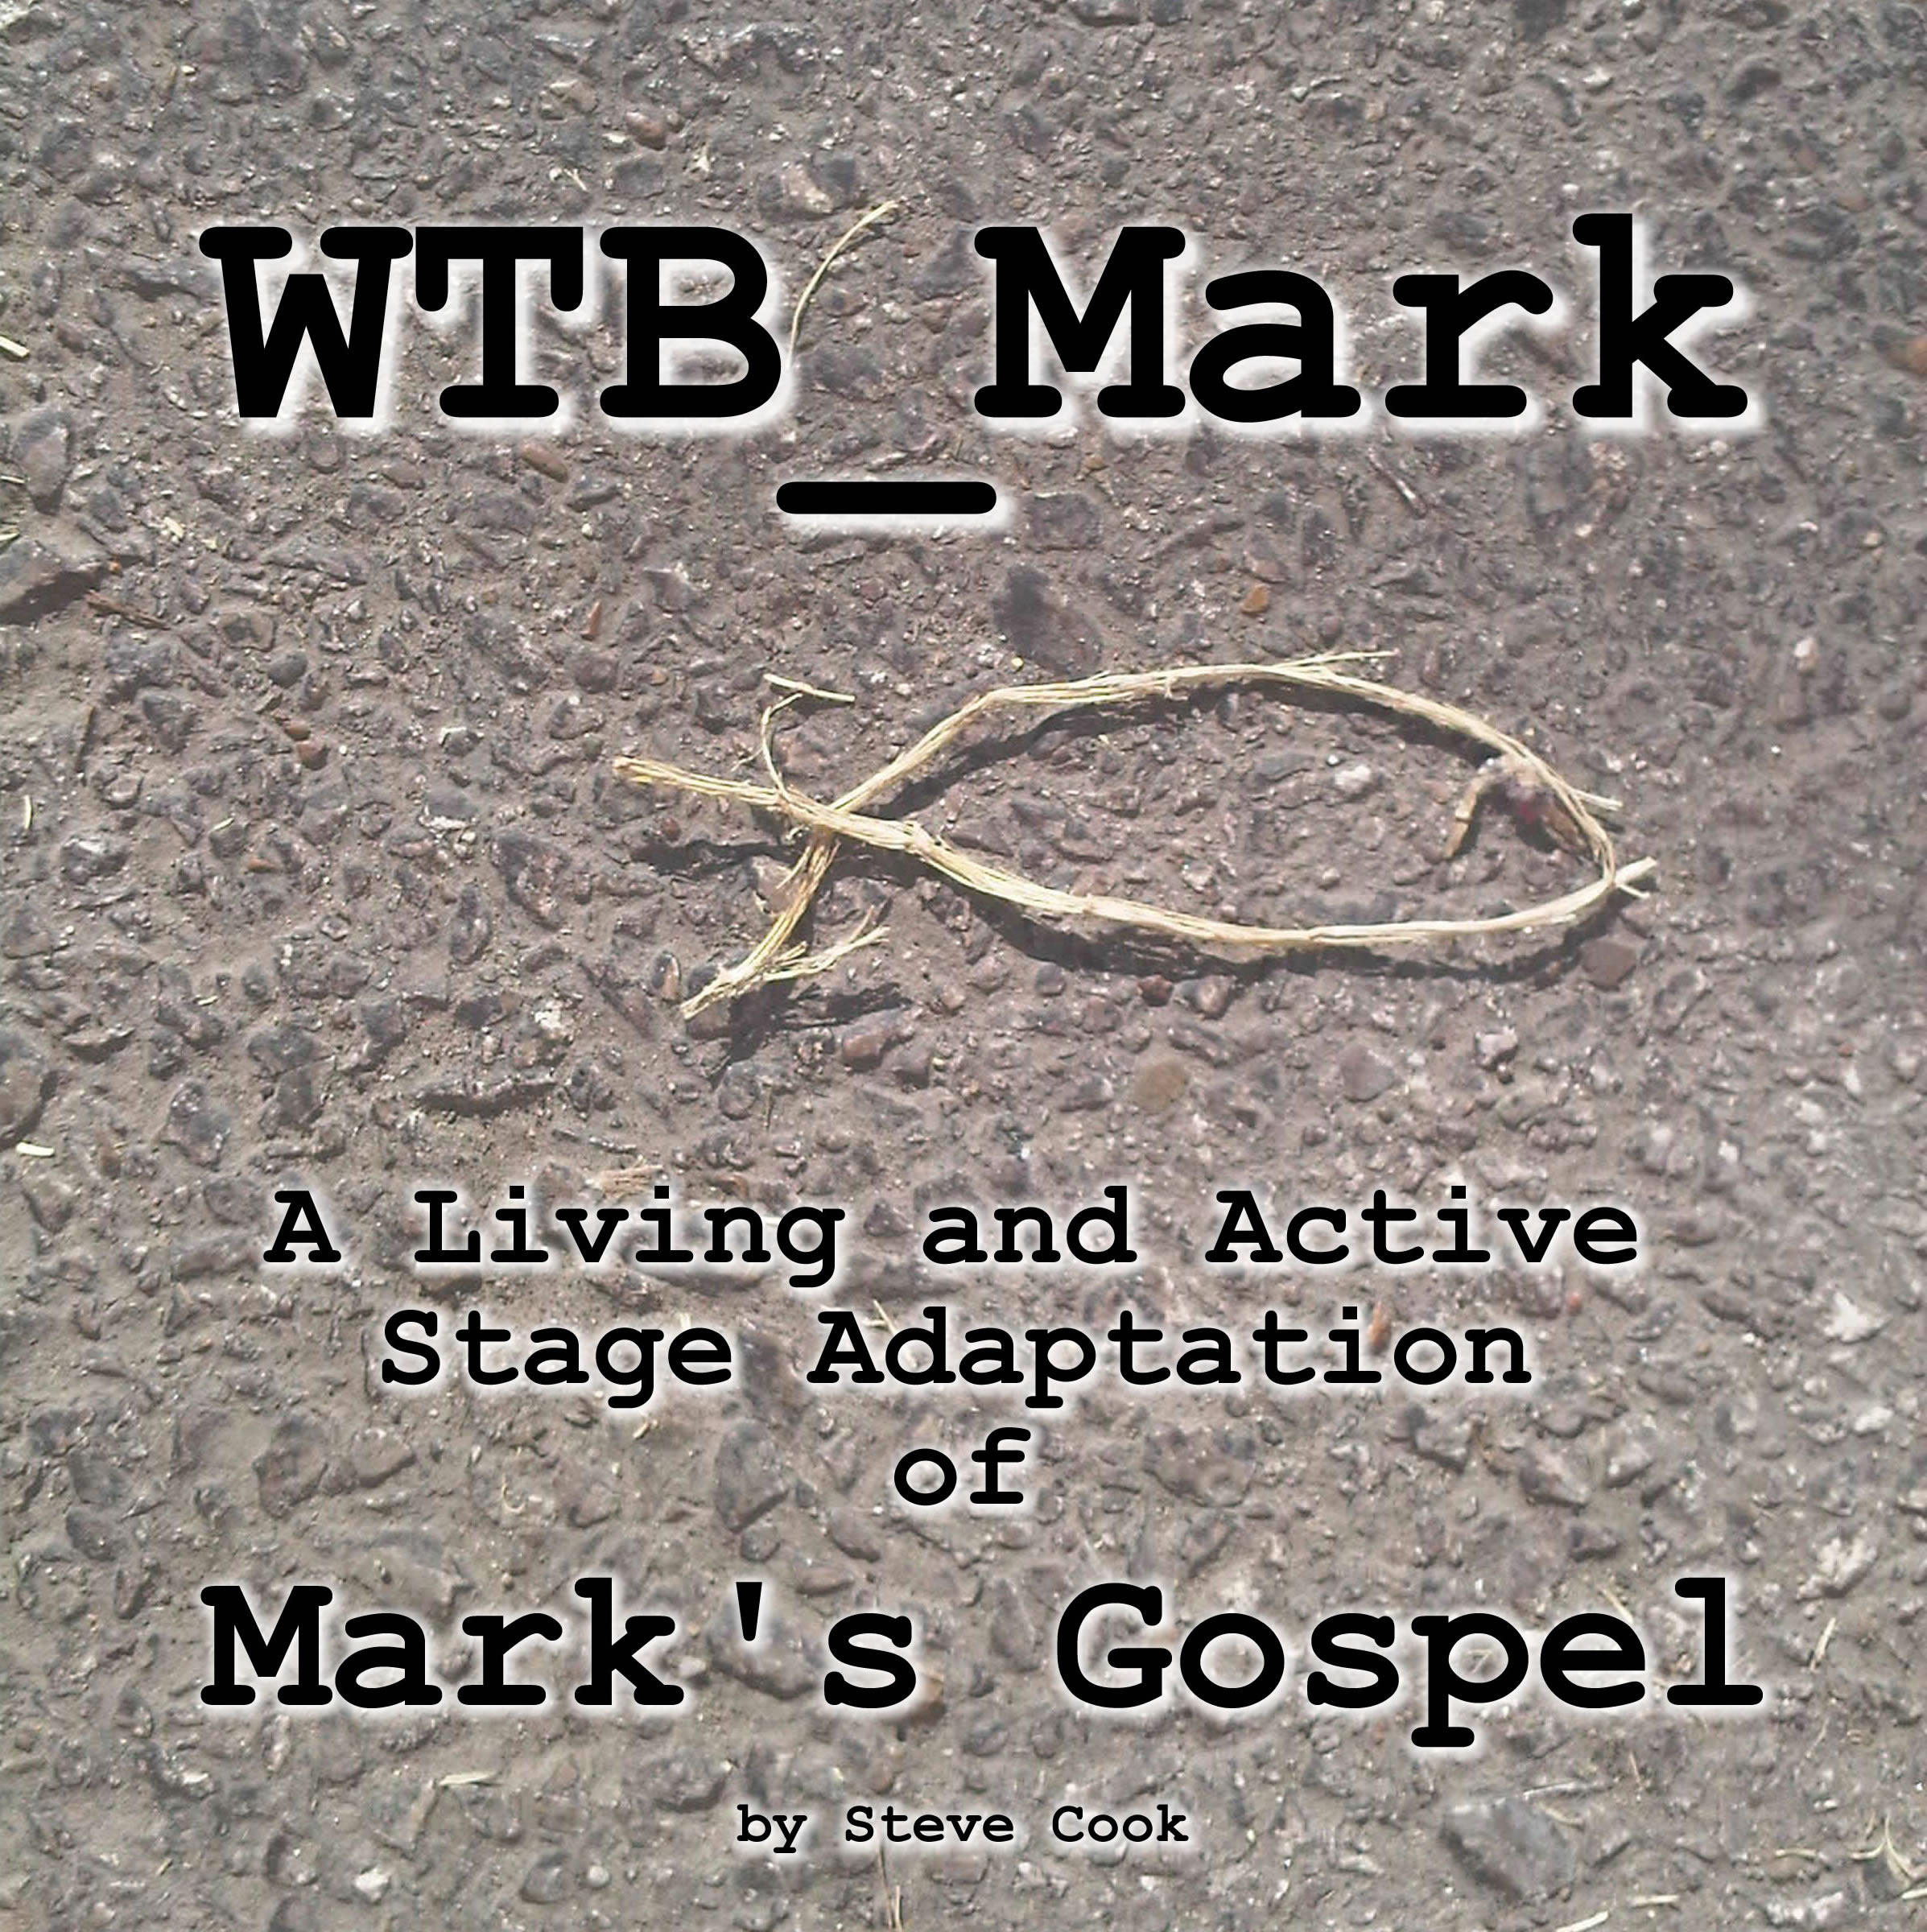 WTB_Mark_Cover_091417-2_mix.jpg